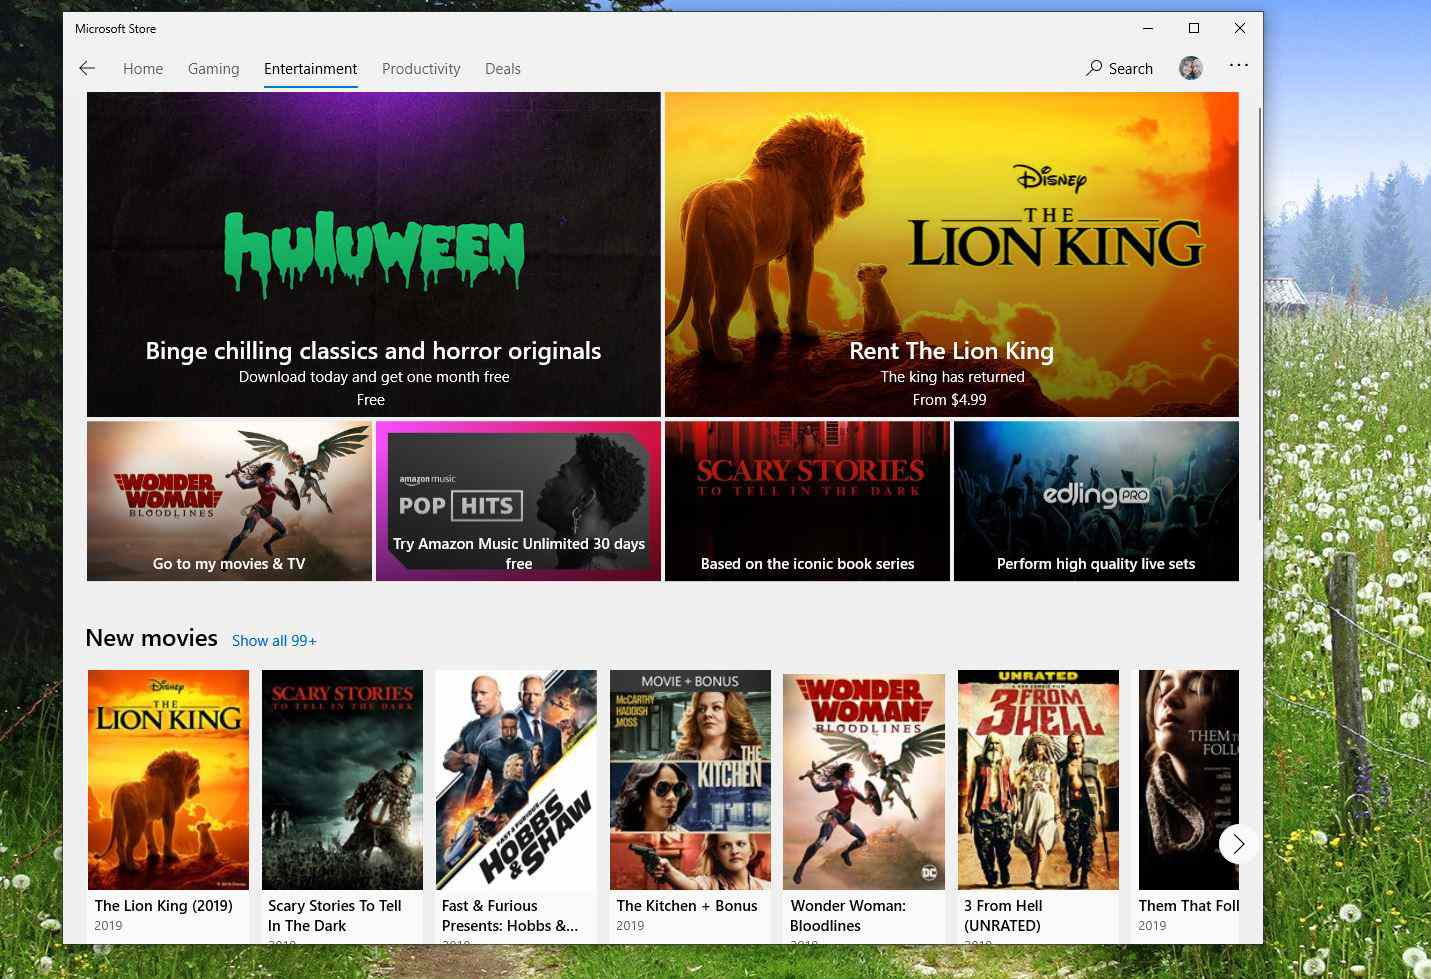 Screenshot of Entertainment category in Microsoft Store